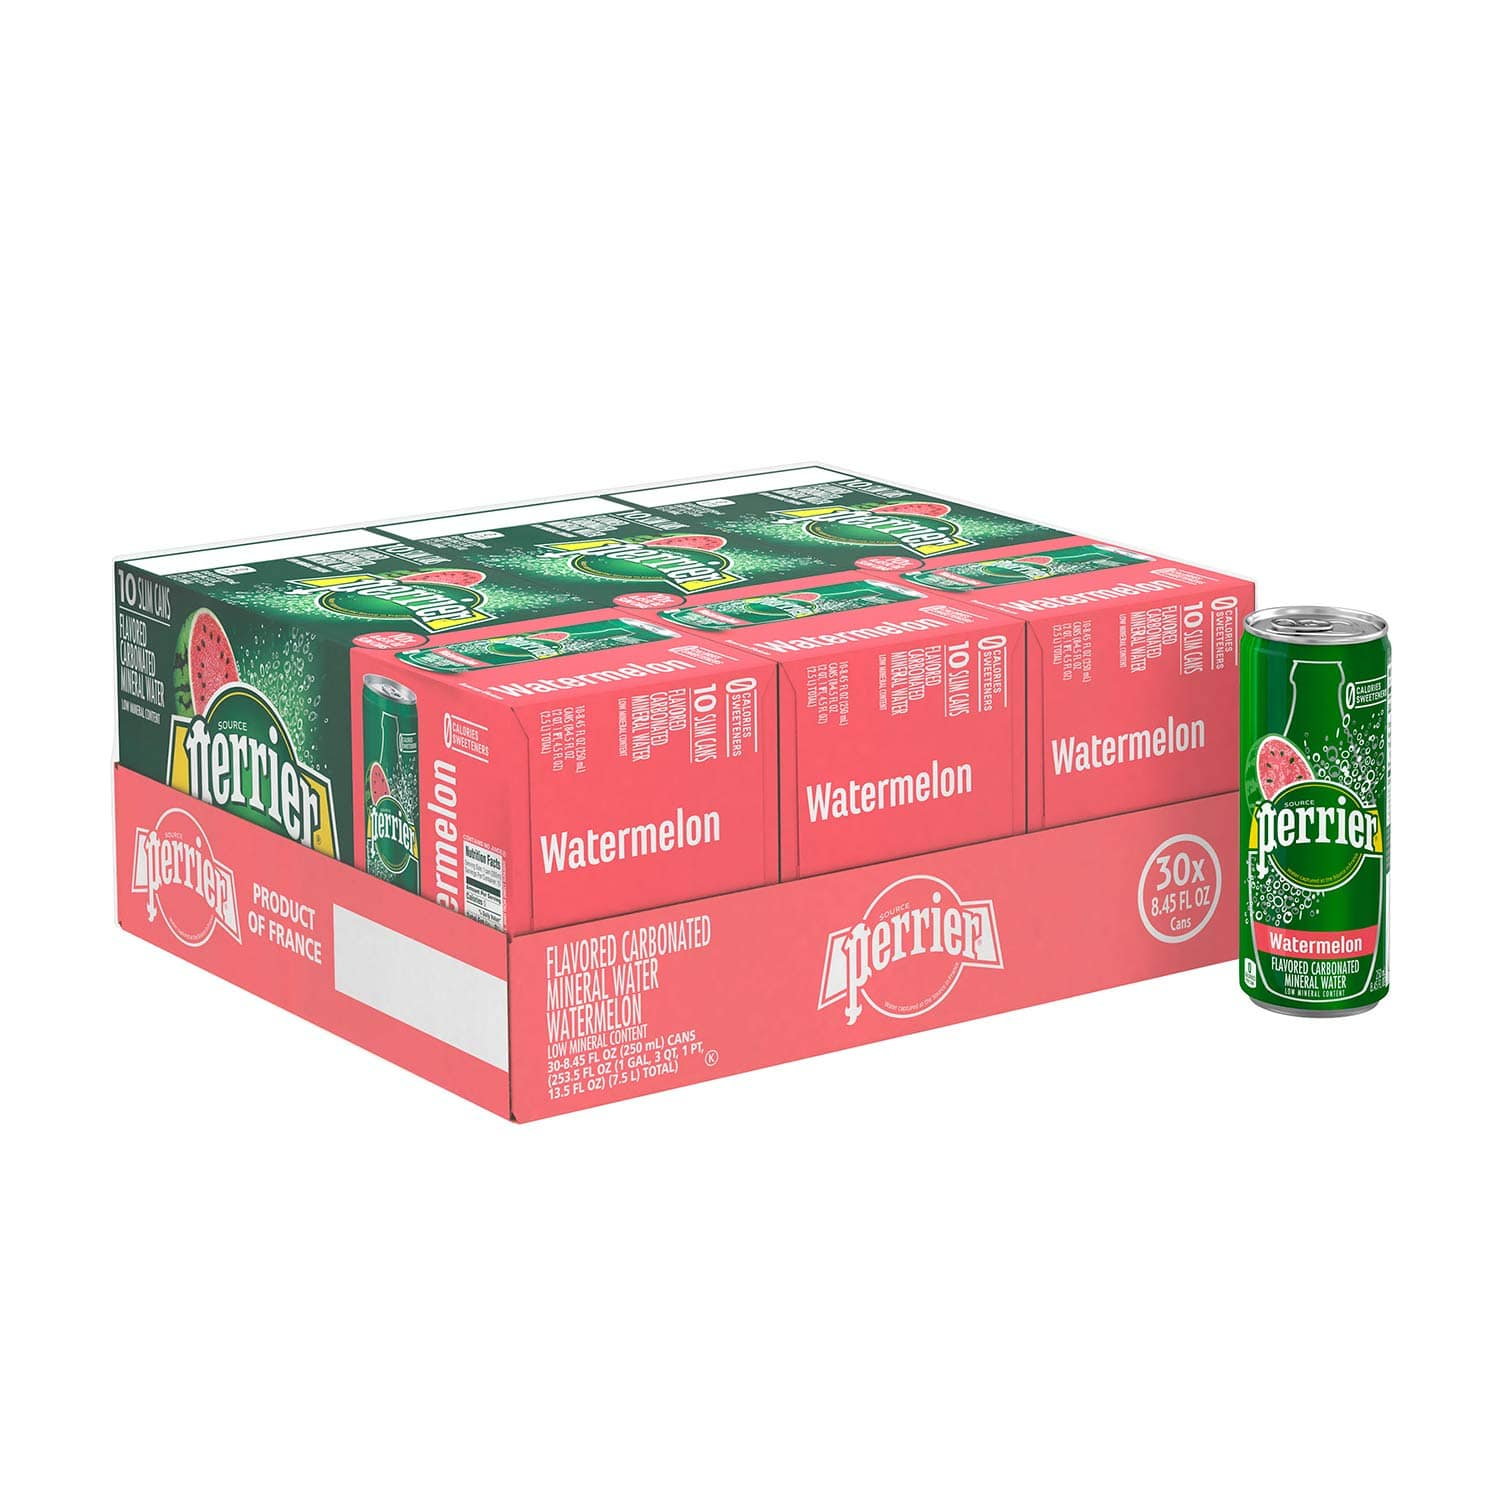 30-Count Perrier Carbonated Watermelon Mineral Water (8.45oz) for $8.52 w/ 5% S&S (or $7.62 w/ 15% S&S) + Free Shipping